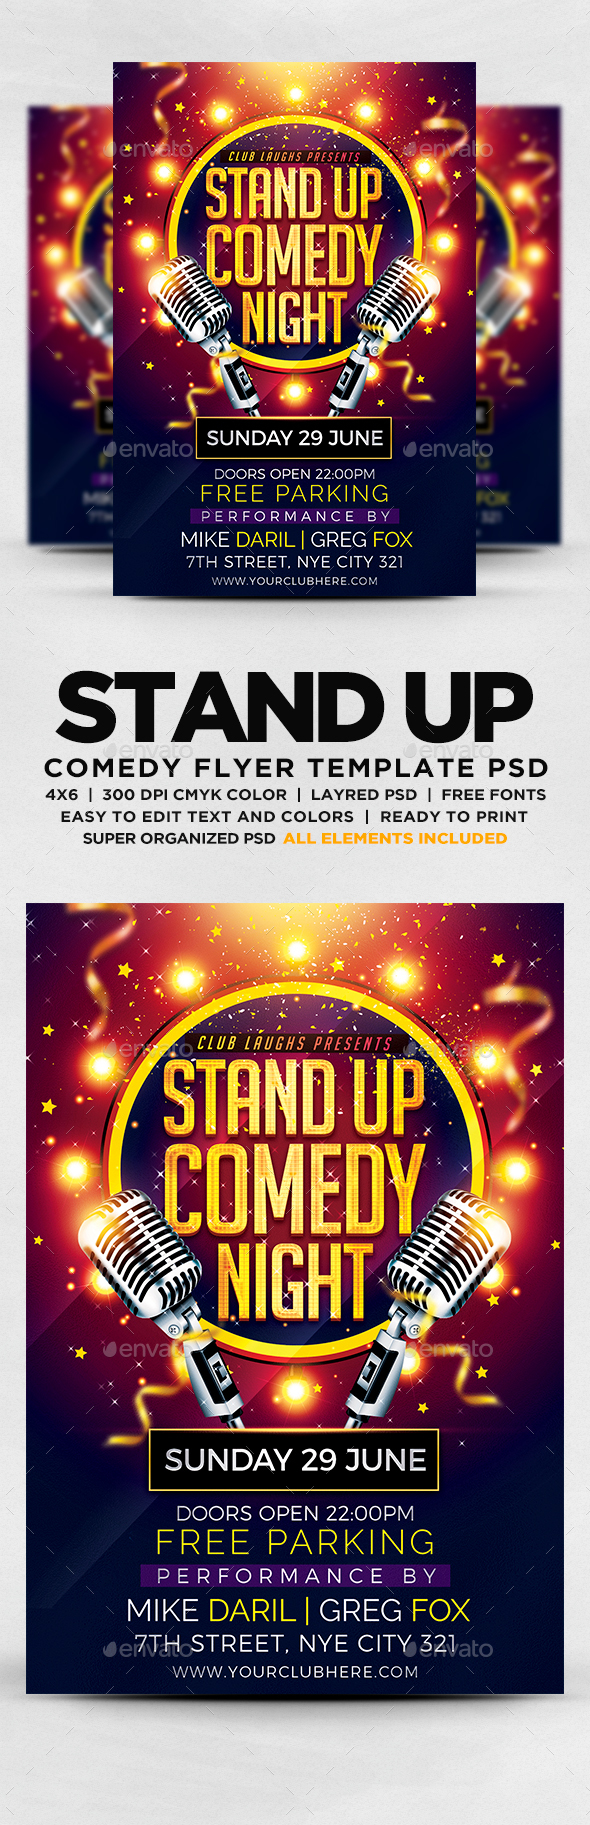 Stand Up Comedy Night | Flyer Templates | Pinterest | Comedy nights ...